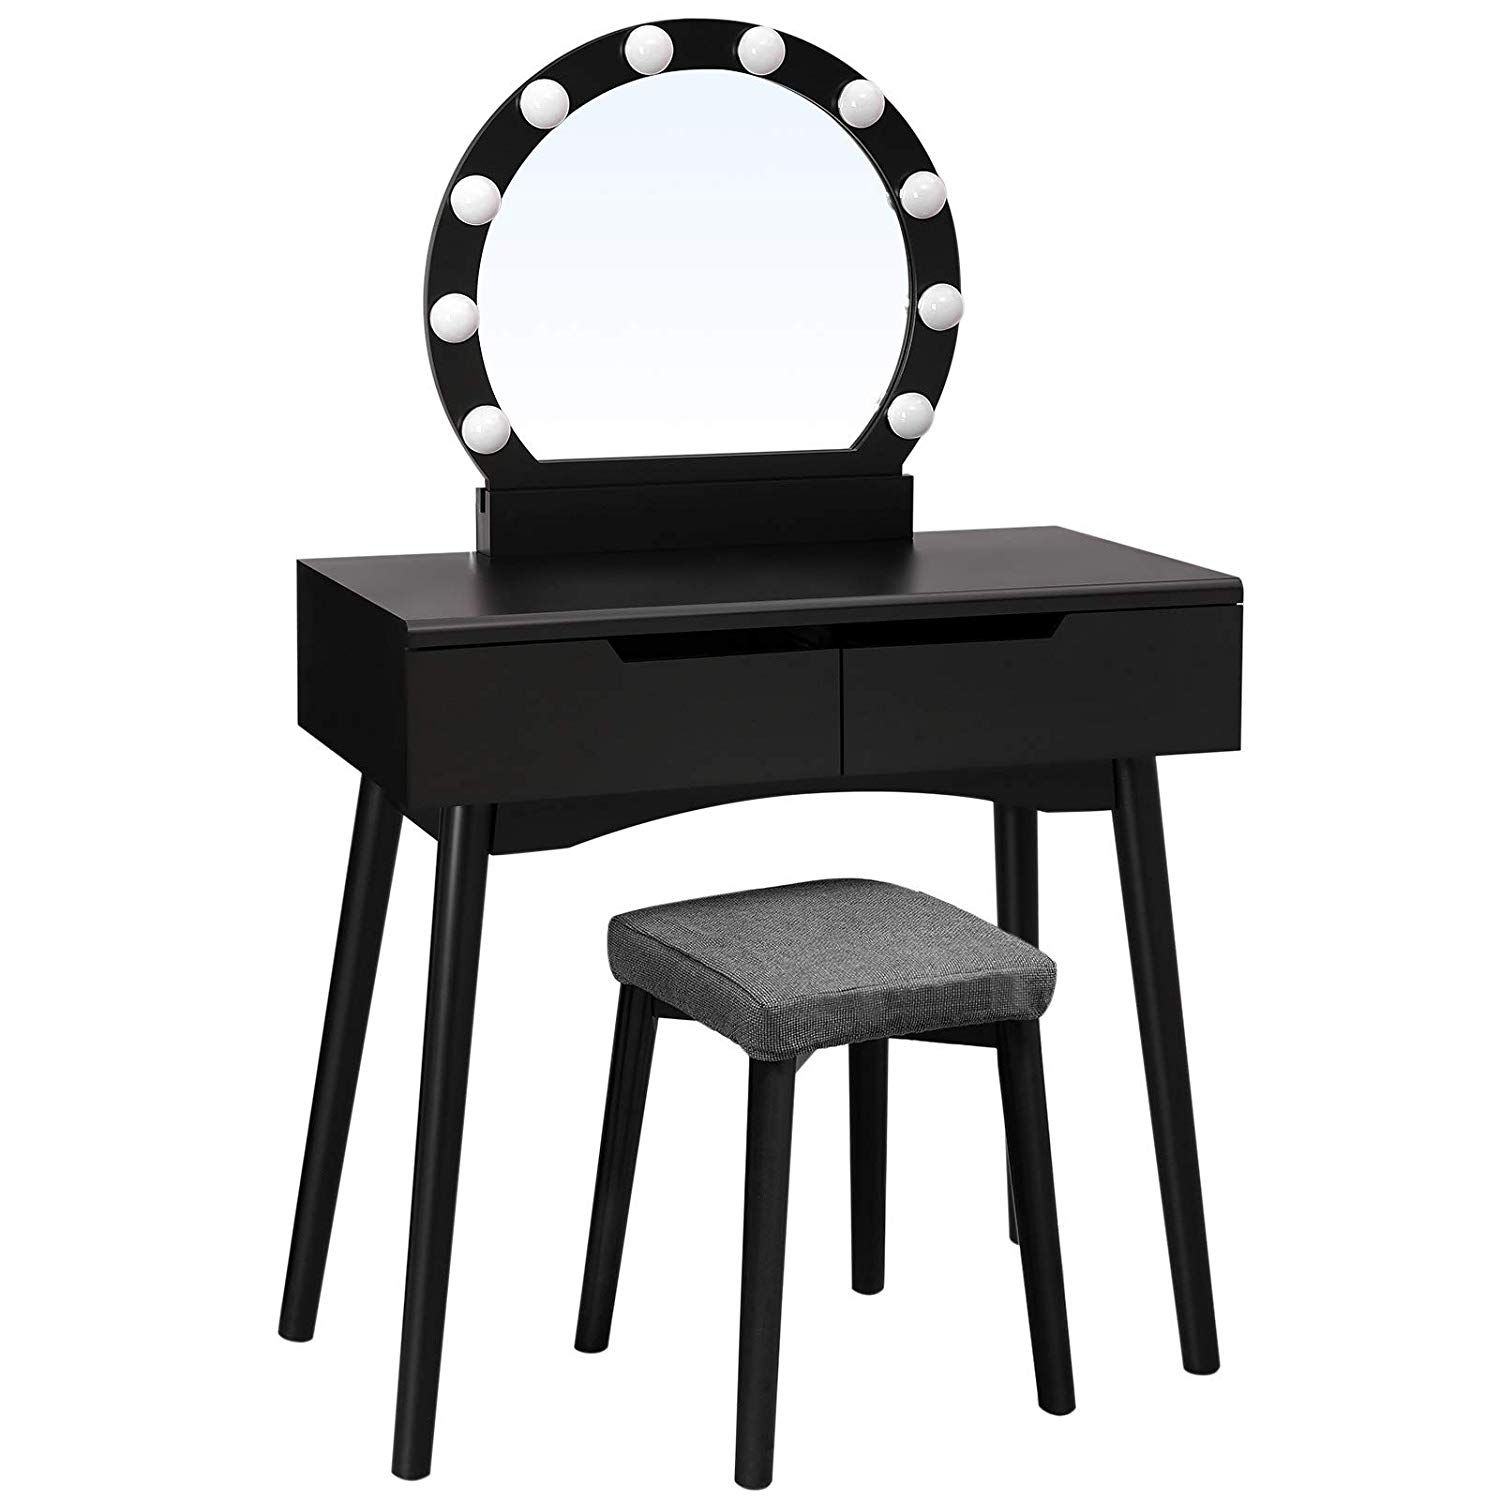 Songmics Illuminated Dressing Table With Mirror And Light Bulbs Vanity Table Dressing Table For A Perfect Ma Gluhbirne Schminktisch Spiegel Gepolsterter Hocker